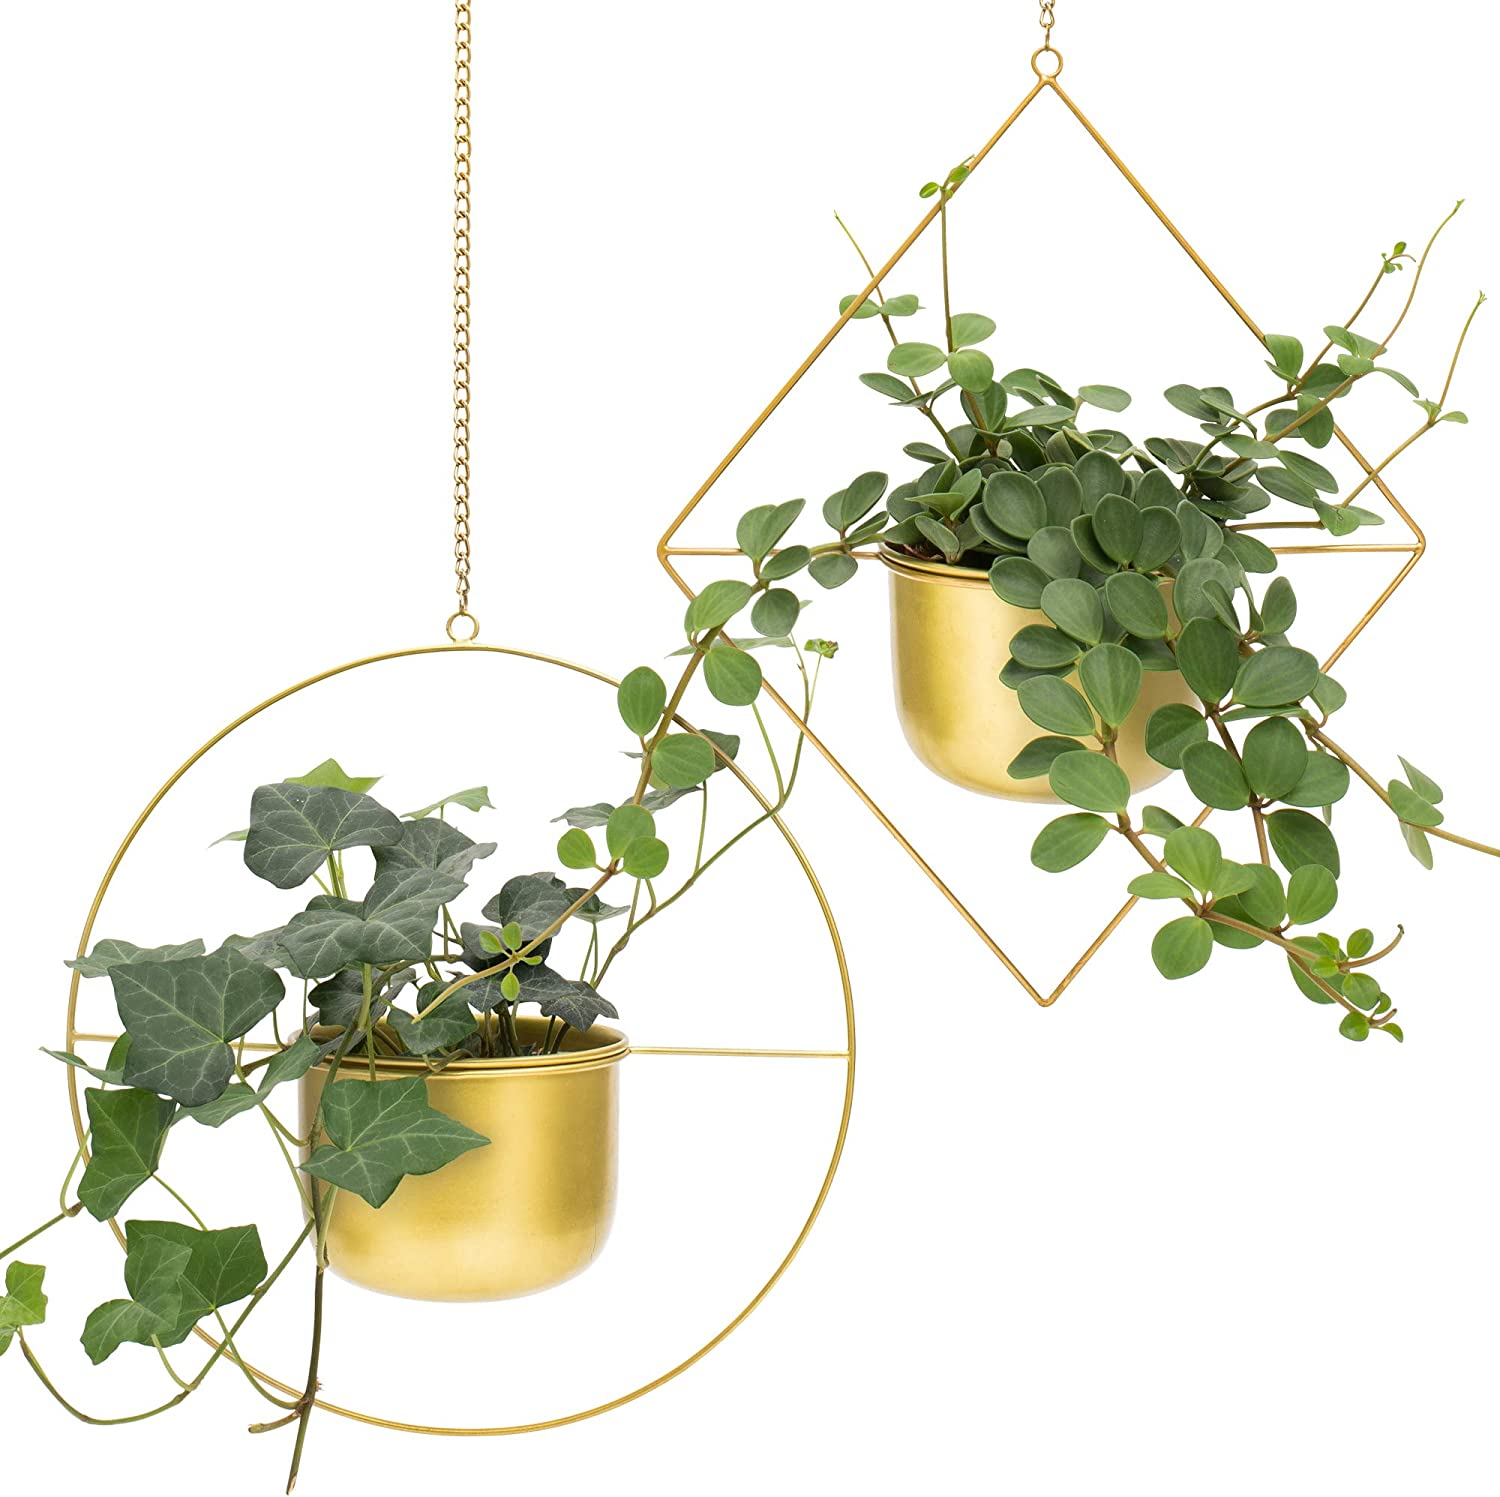 Set 2 Brass Gold Geometric Metal Hanging Plant Pot, Decorative Flower Pot Holder with Planter, Mid Century Cactus and Succulent Planter, Living Room Décor, Gold Party and Wall Decoration, Indoor